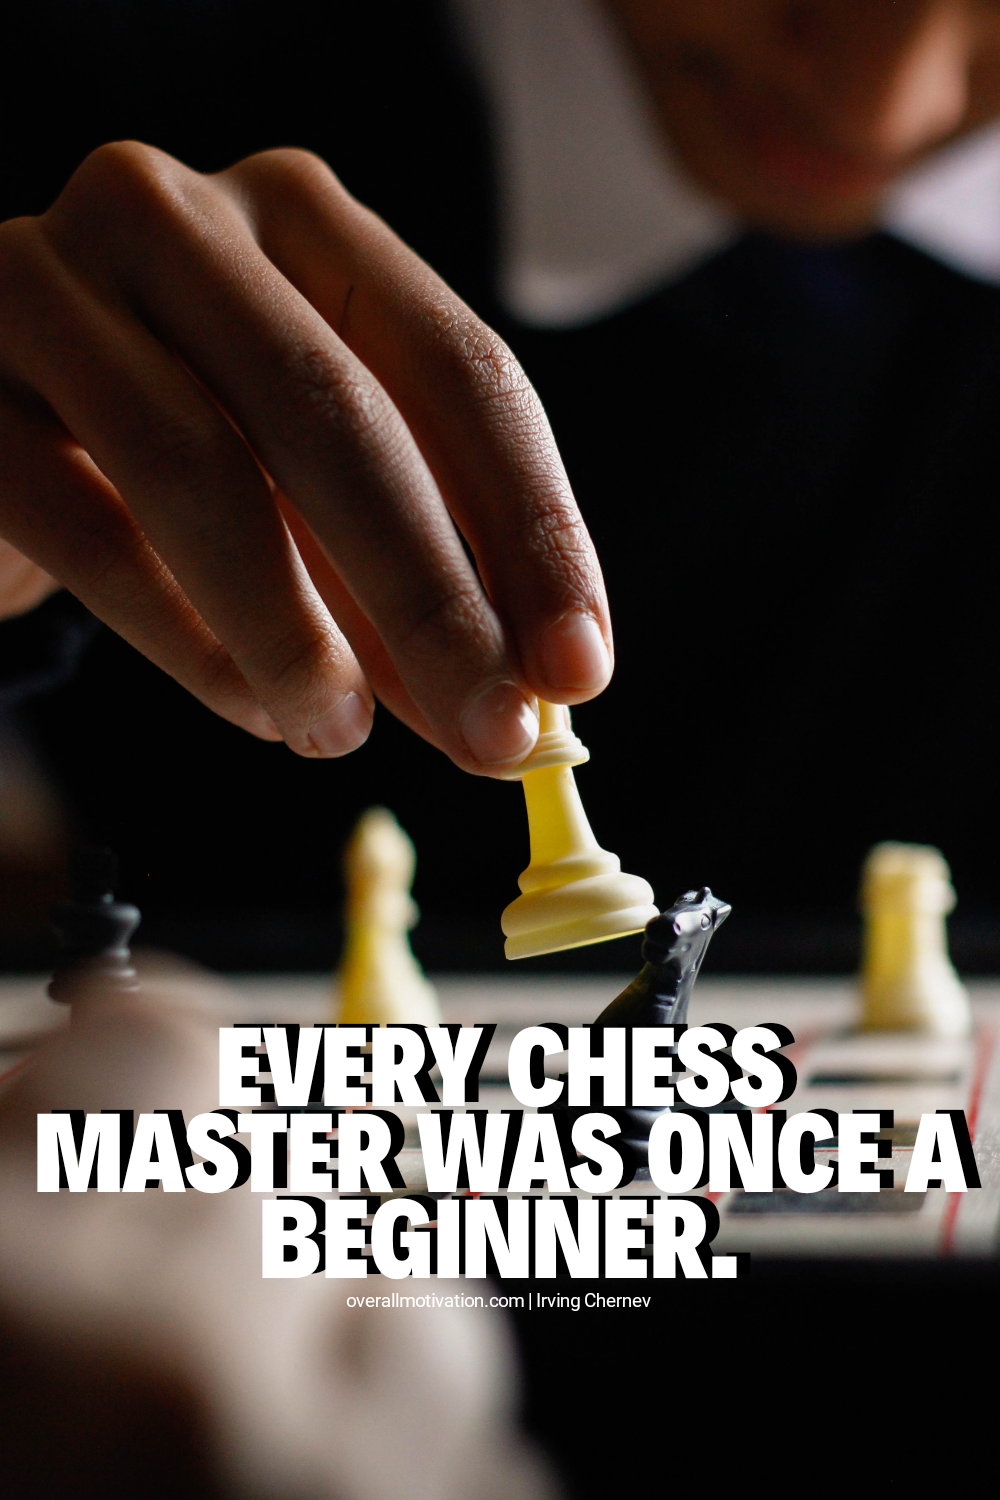 every chess master